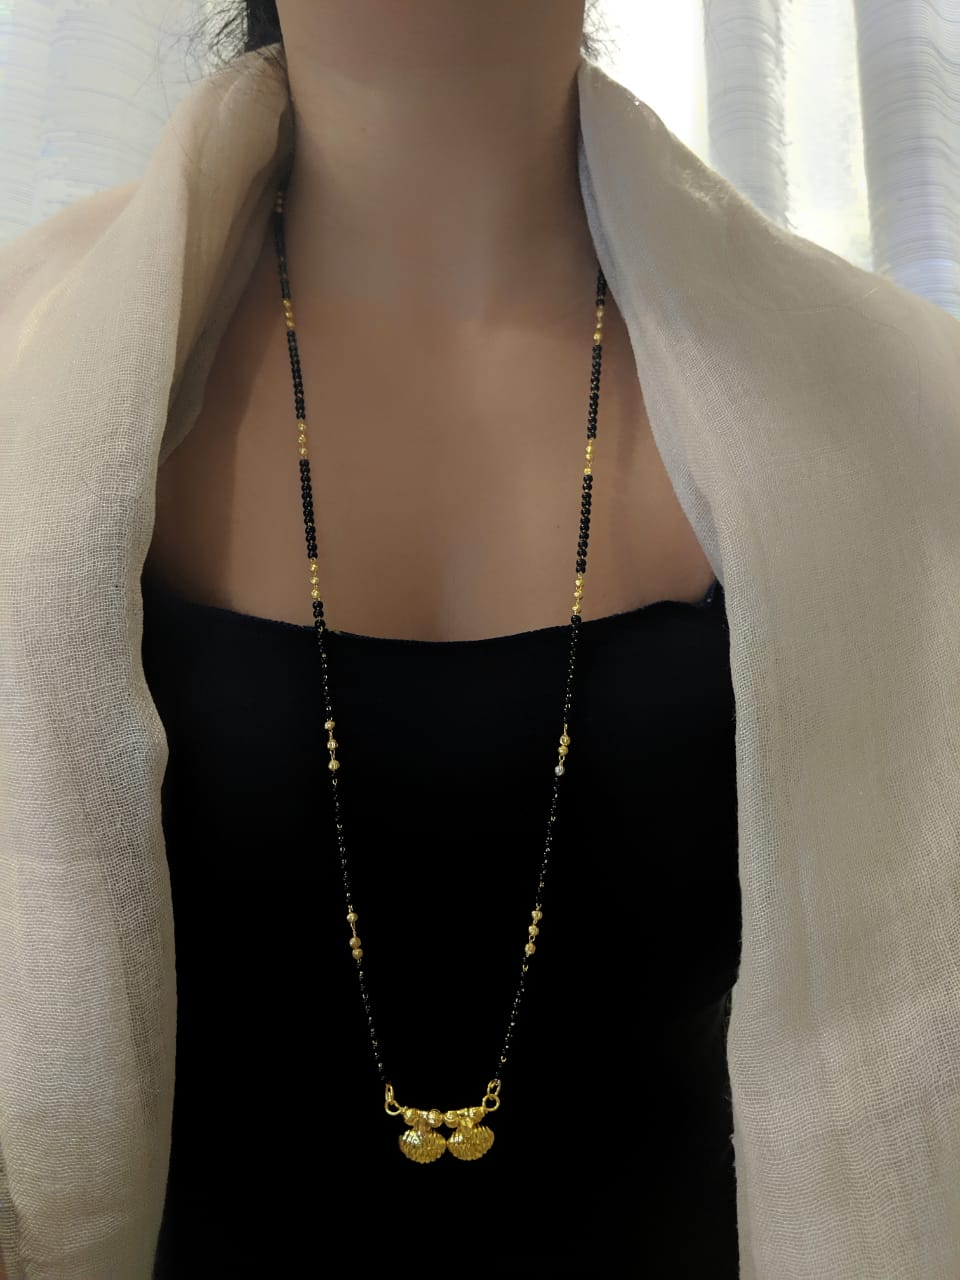 Digital Jewellery Women's Pride Gold Plated Alloy 2 Vati Tanmaniya Pendant Mangalsutra 31-inch Length Chain Traditional Golden Black Mani Beads Single Line Layer Long Necklace for Girls